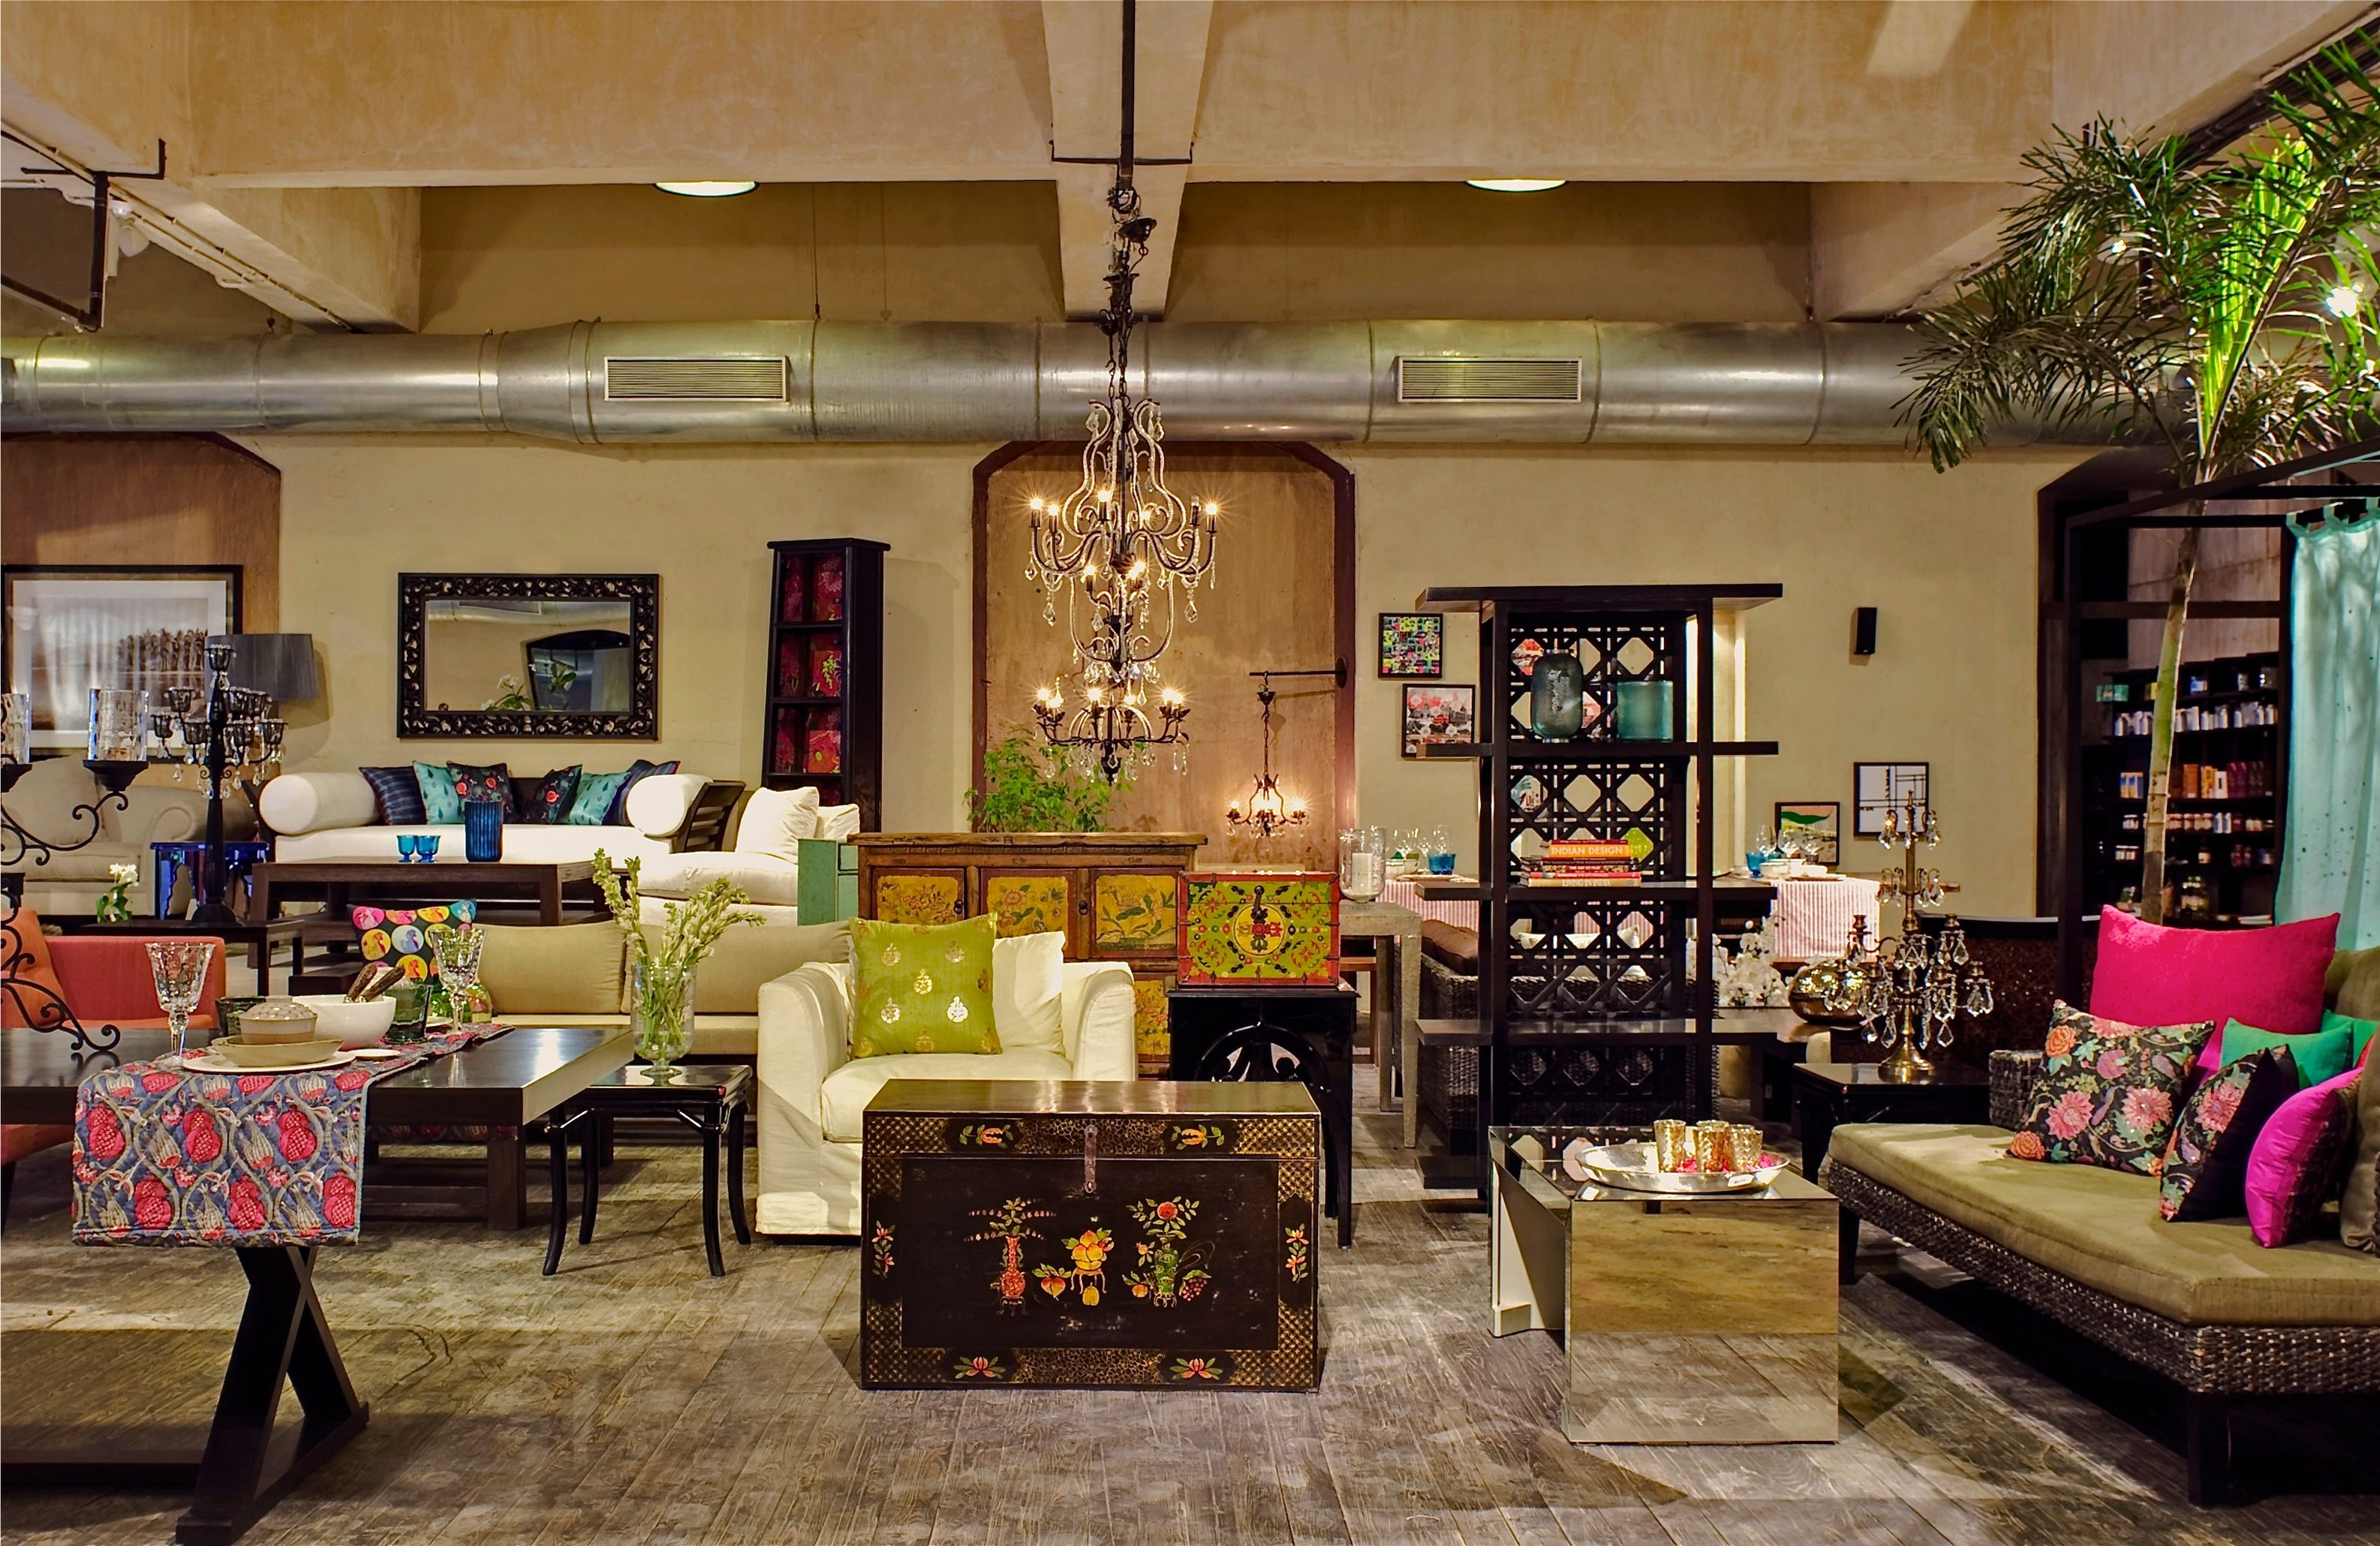 Mumbai Other Stores Good Earth Cheap Home Decor